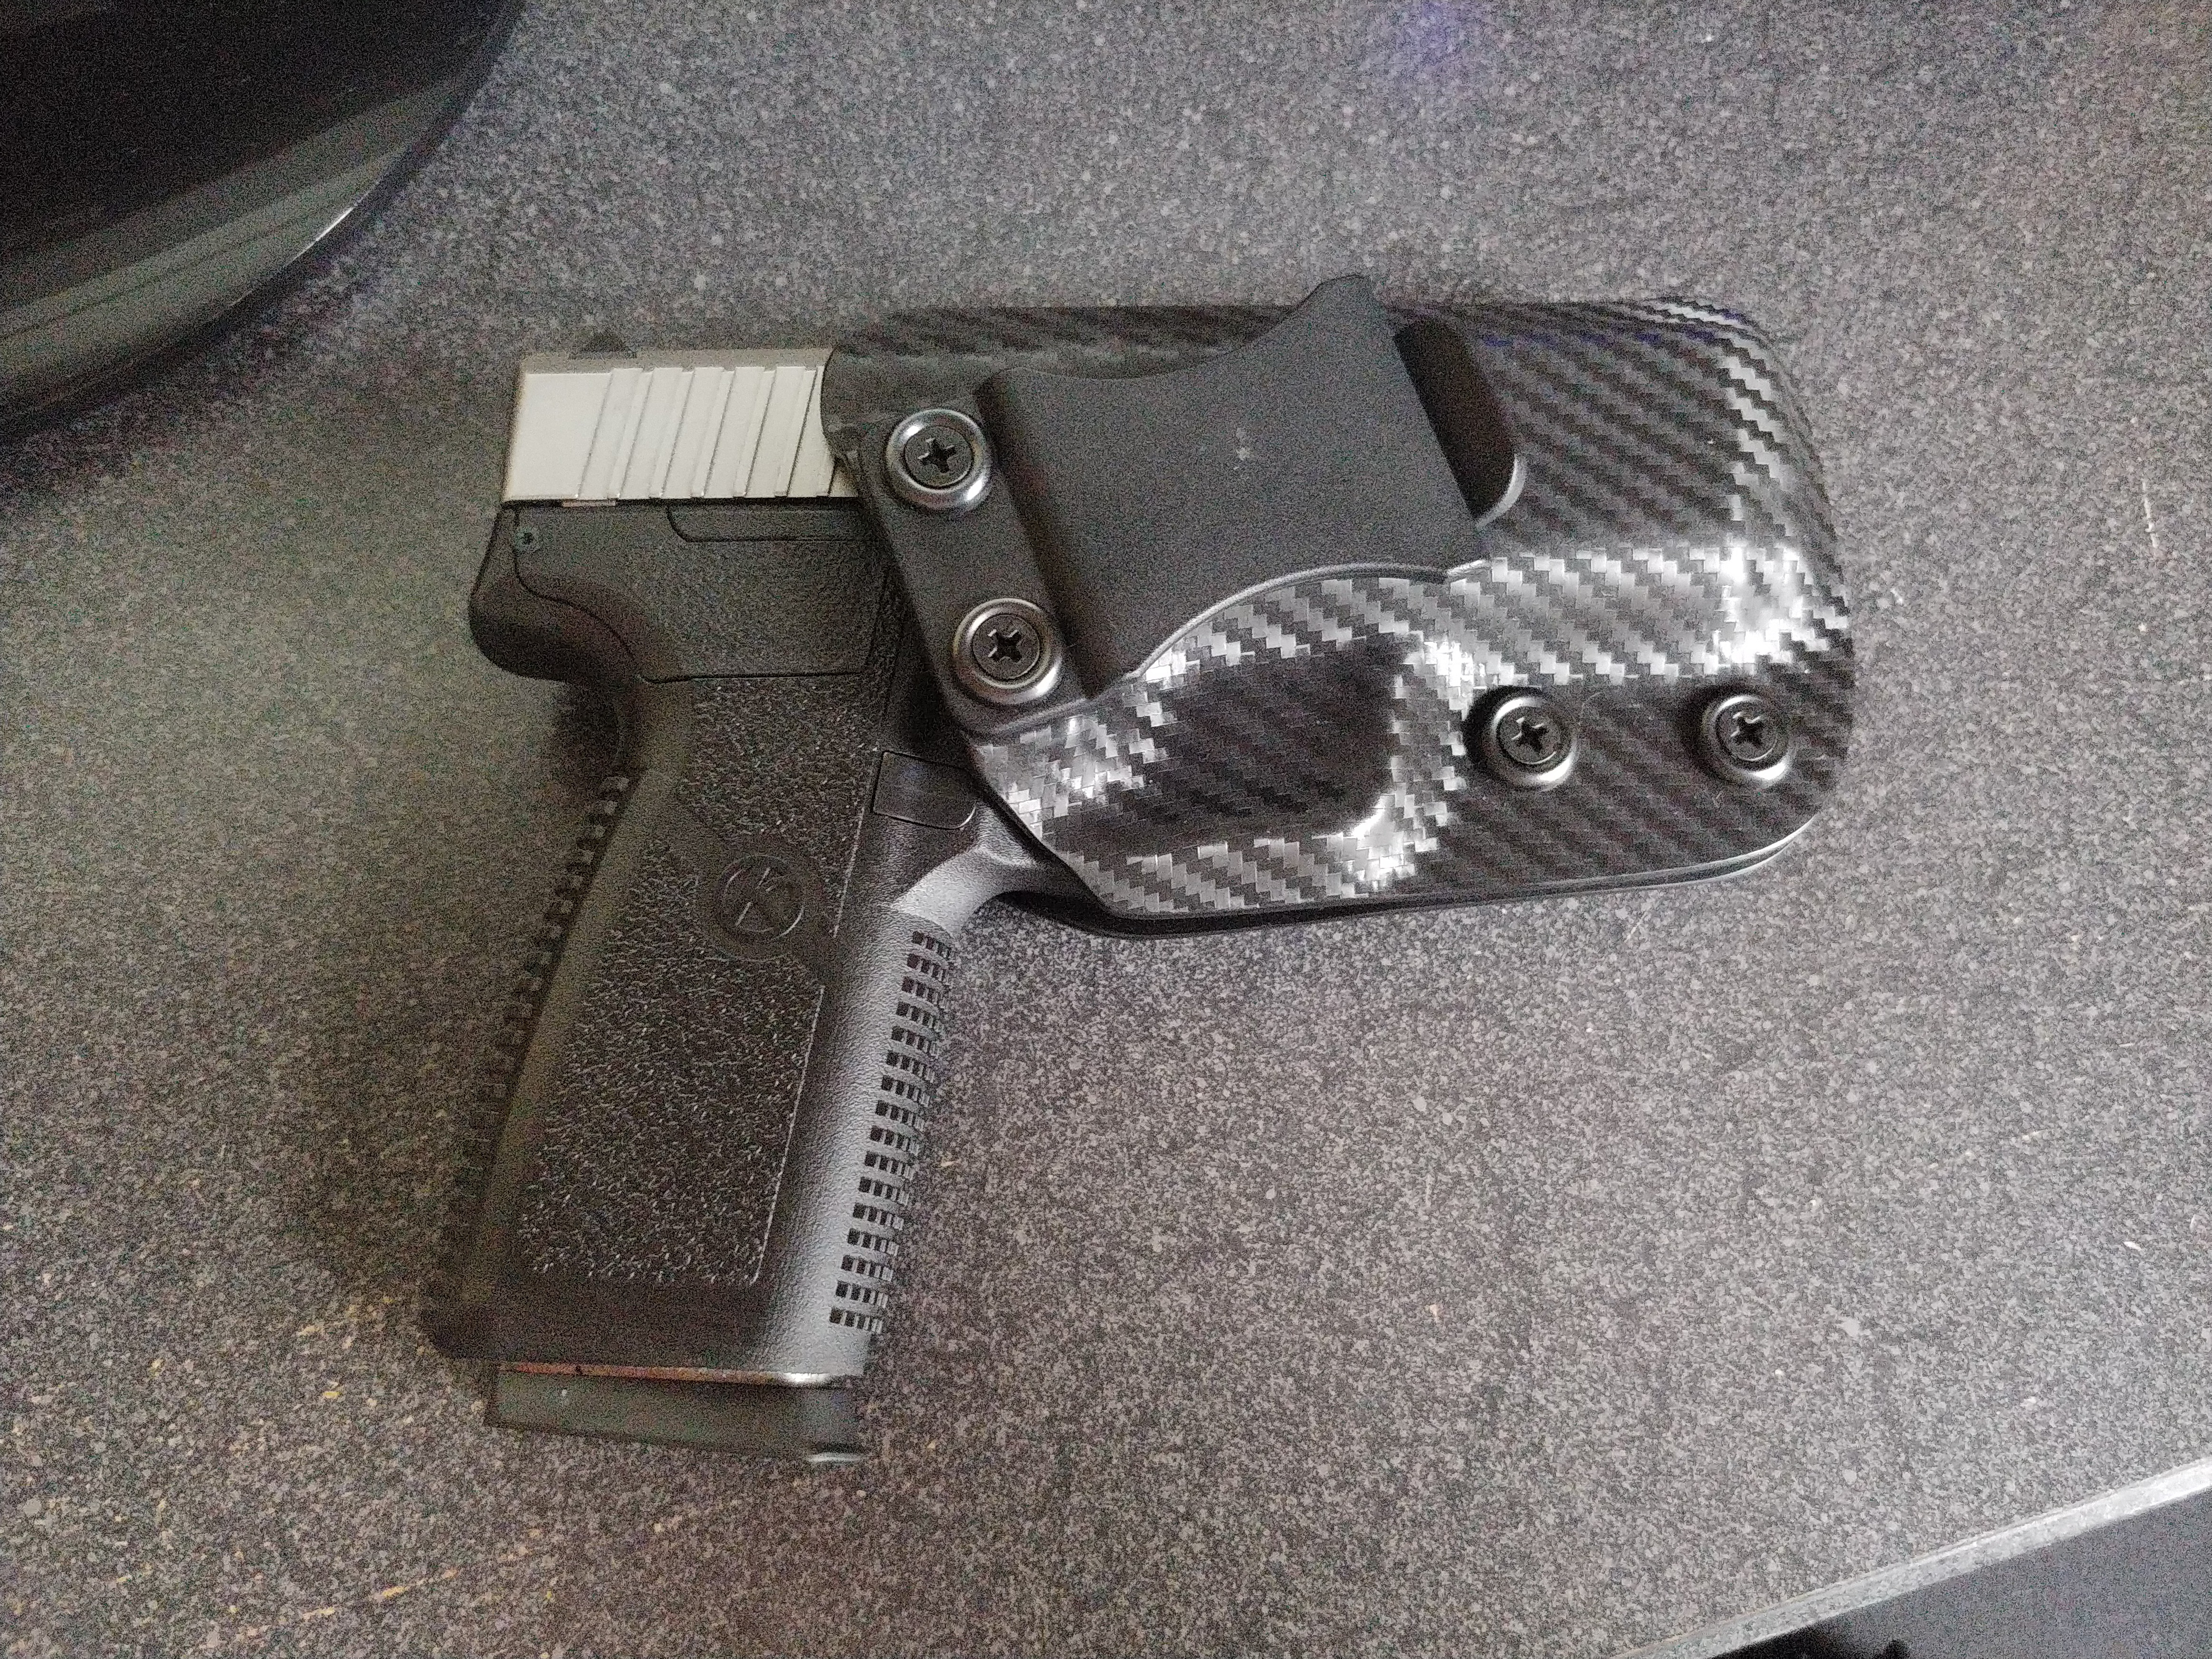 New Kahr K9 for CCW? - Page 2